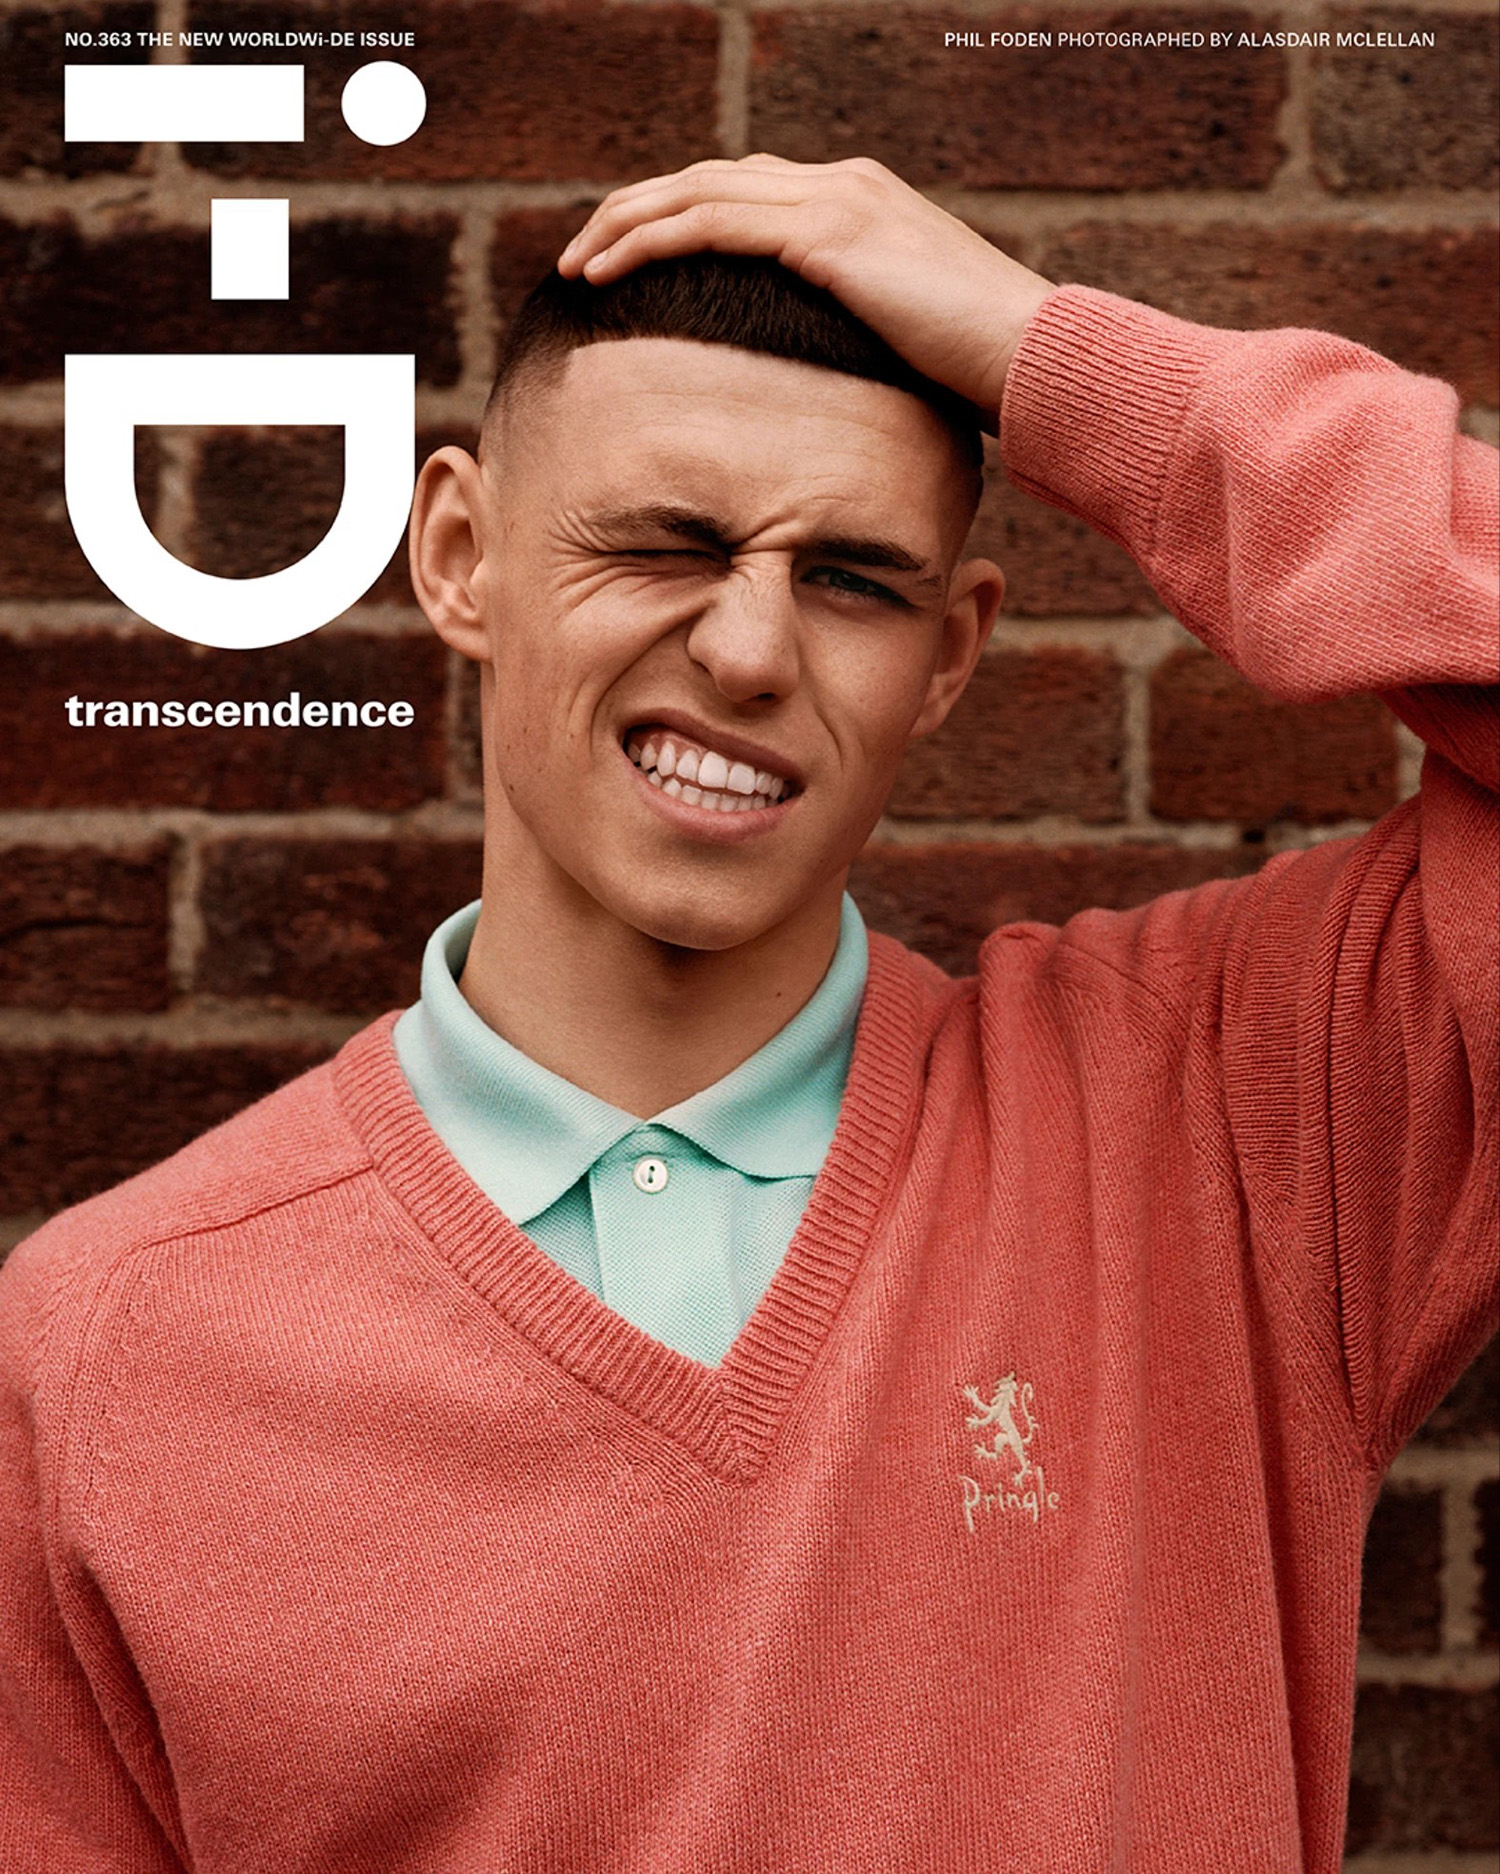 Phil Foden covers i-D Magazine Issue 363 by Alasdair McLellan